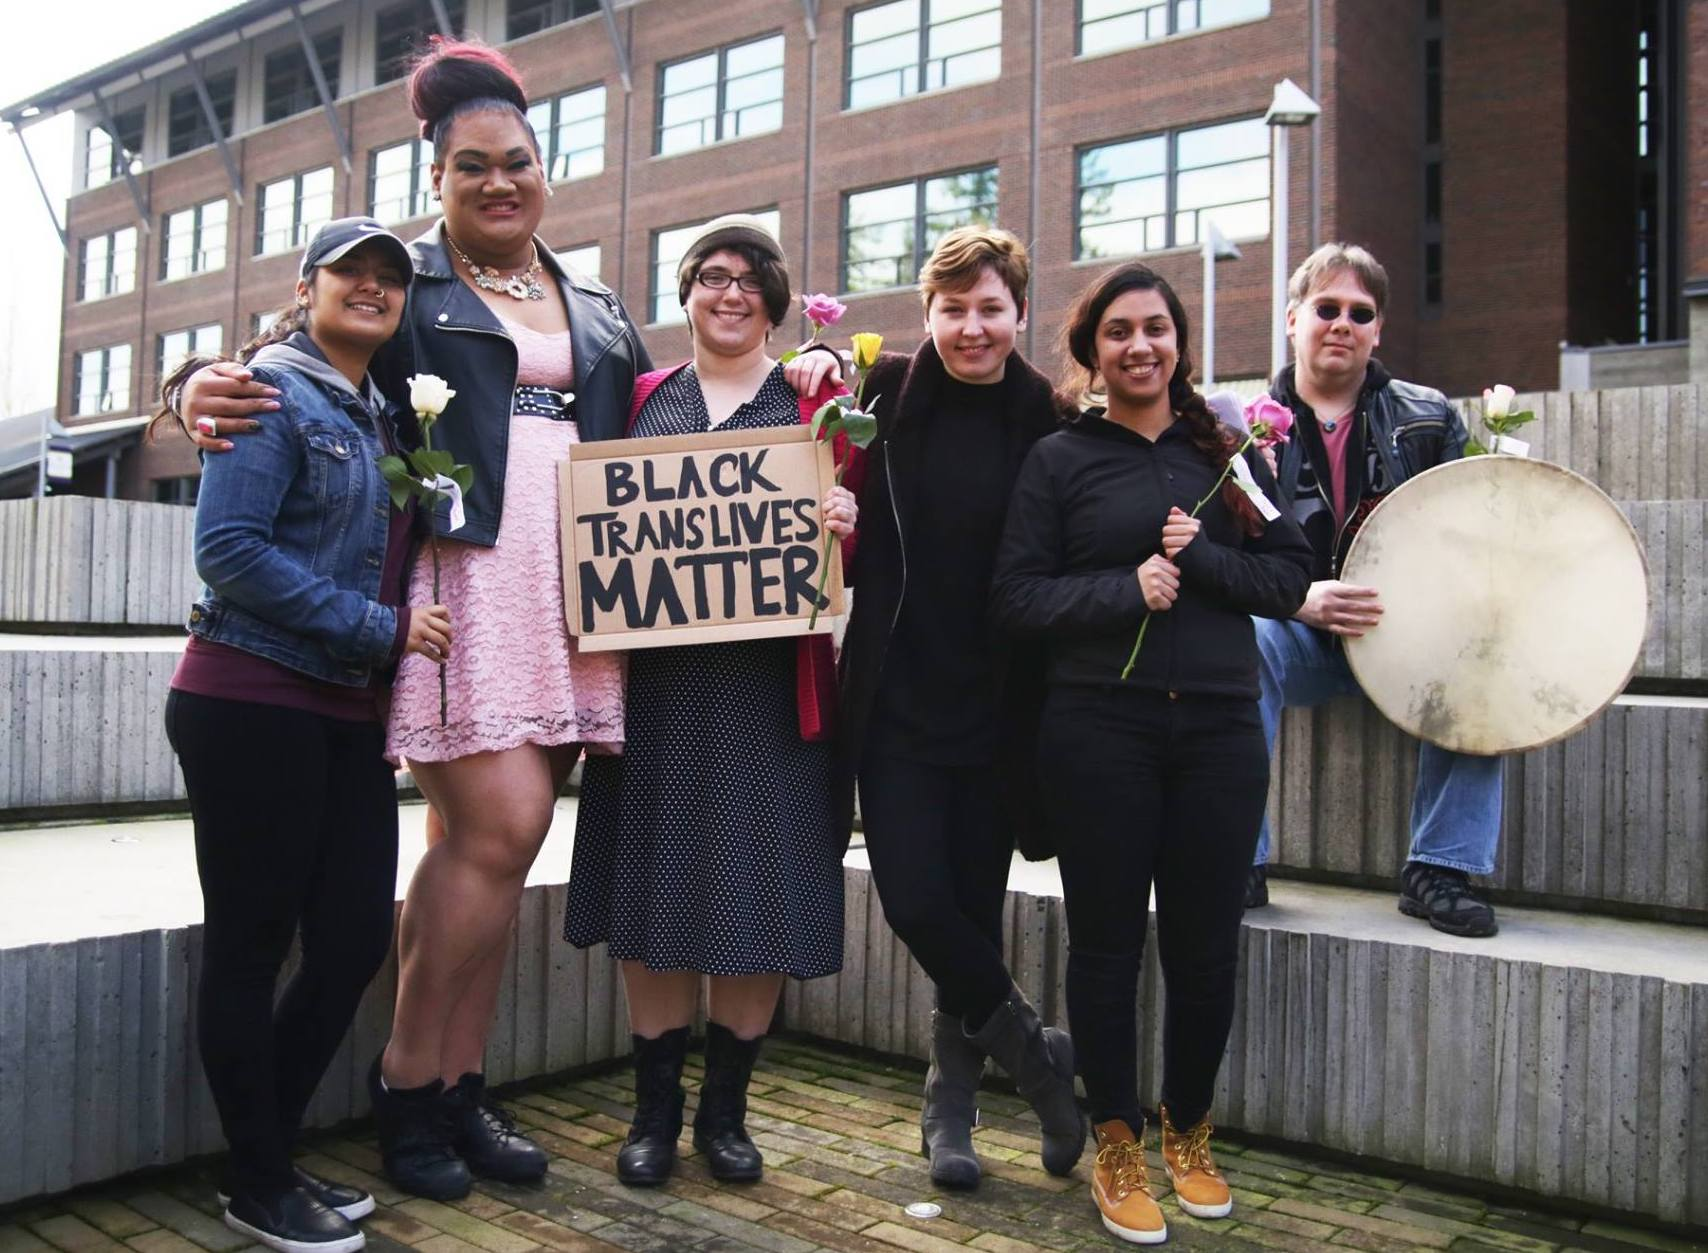 Six people outside with a sign that says Black trans lives matter